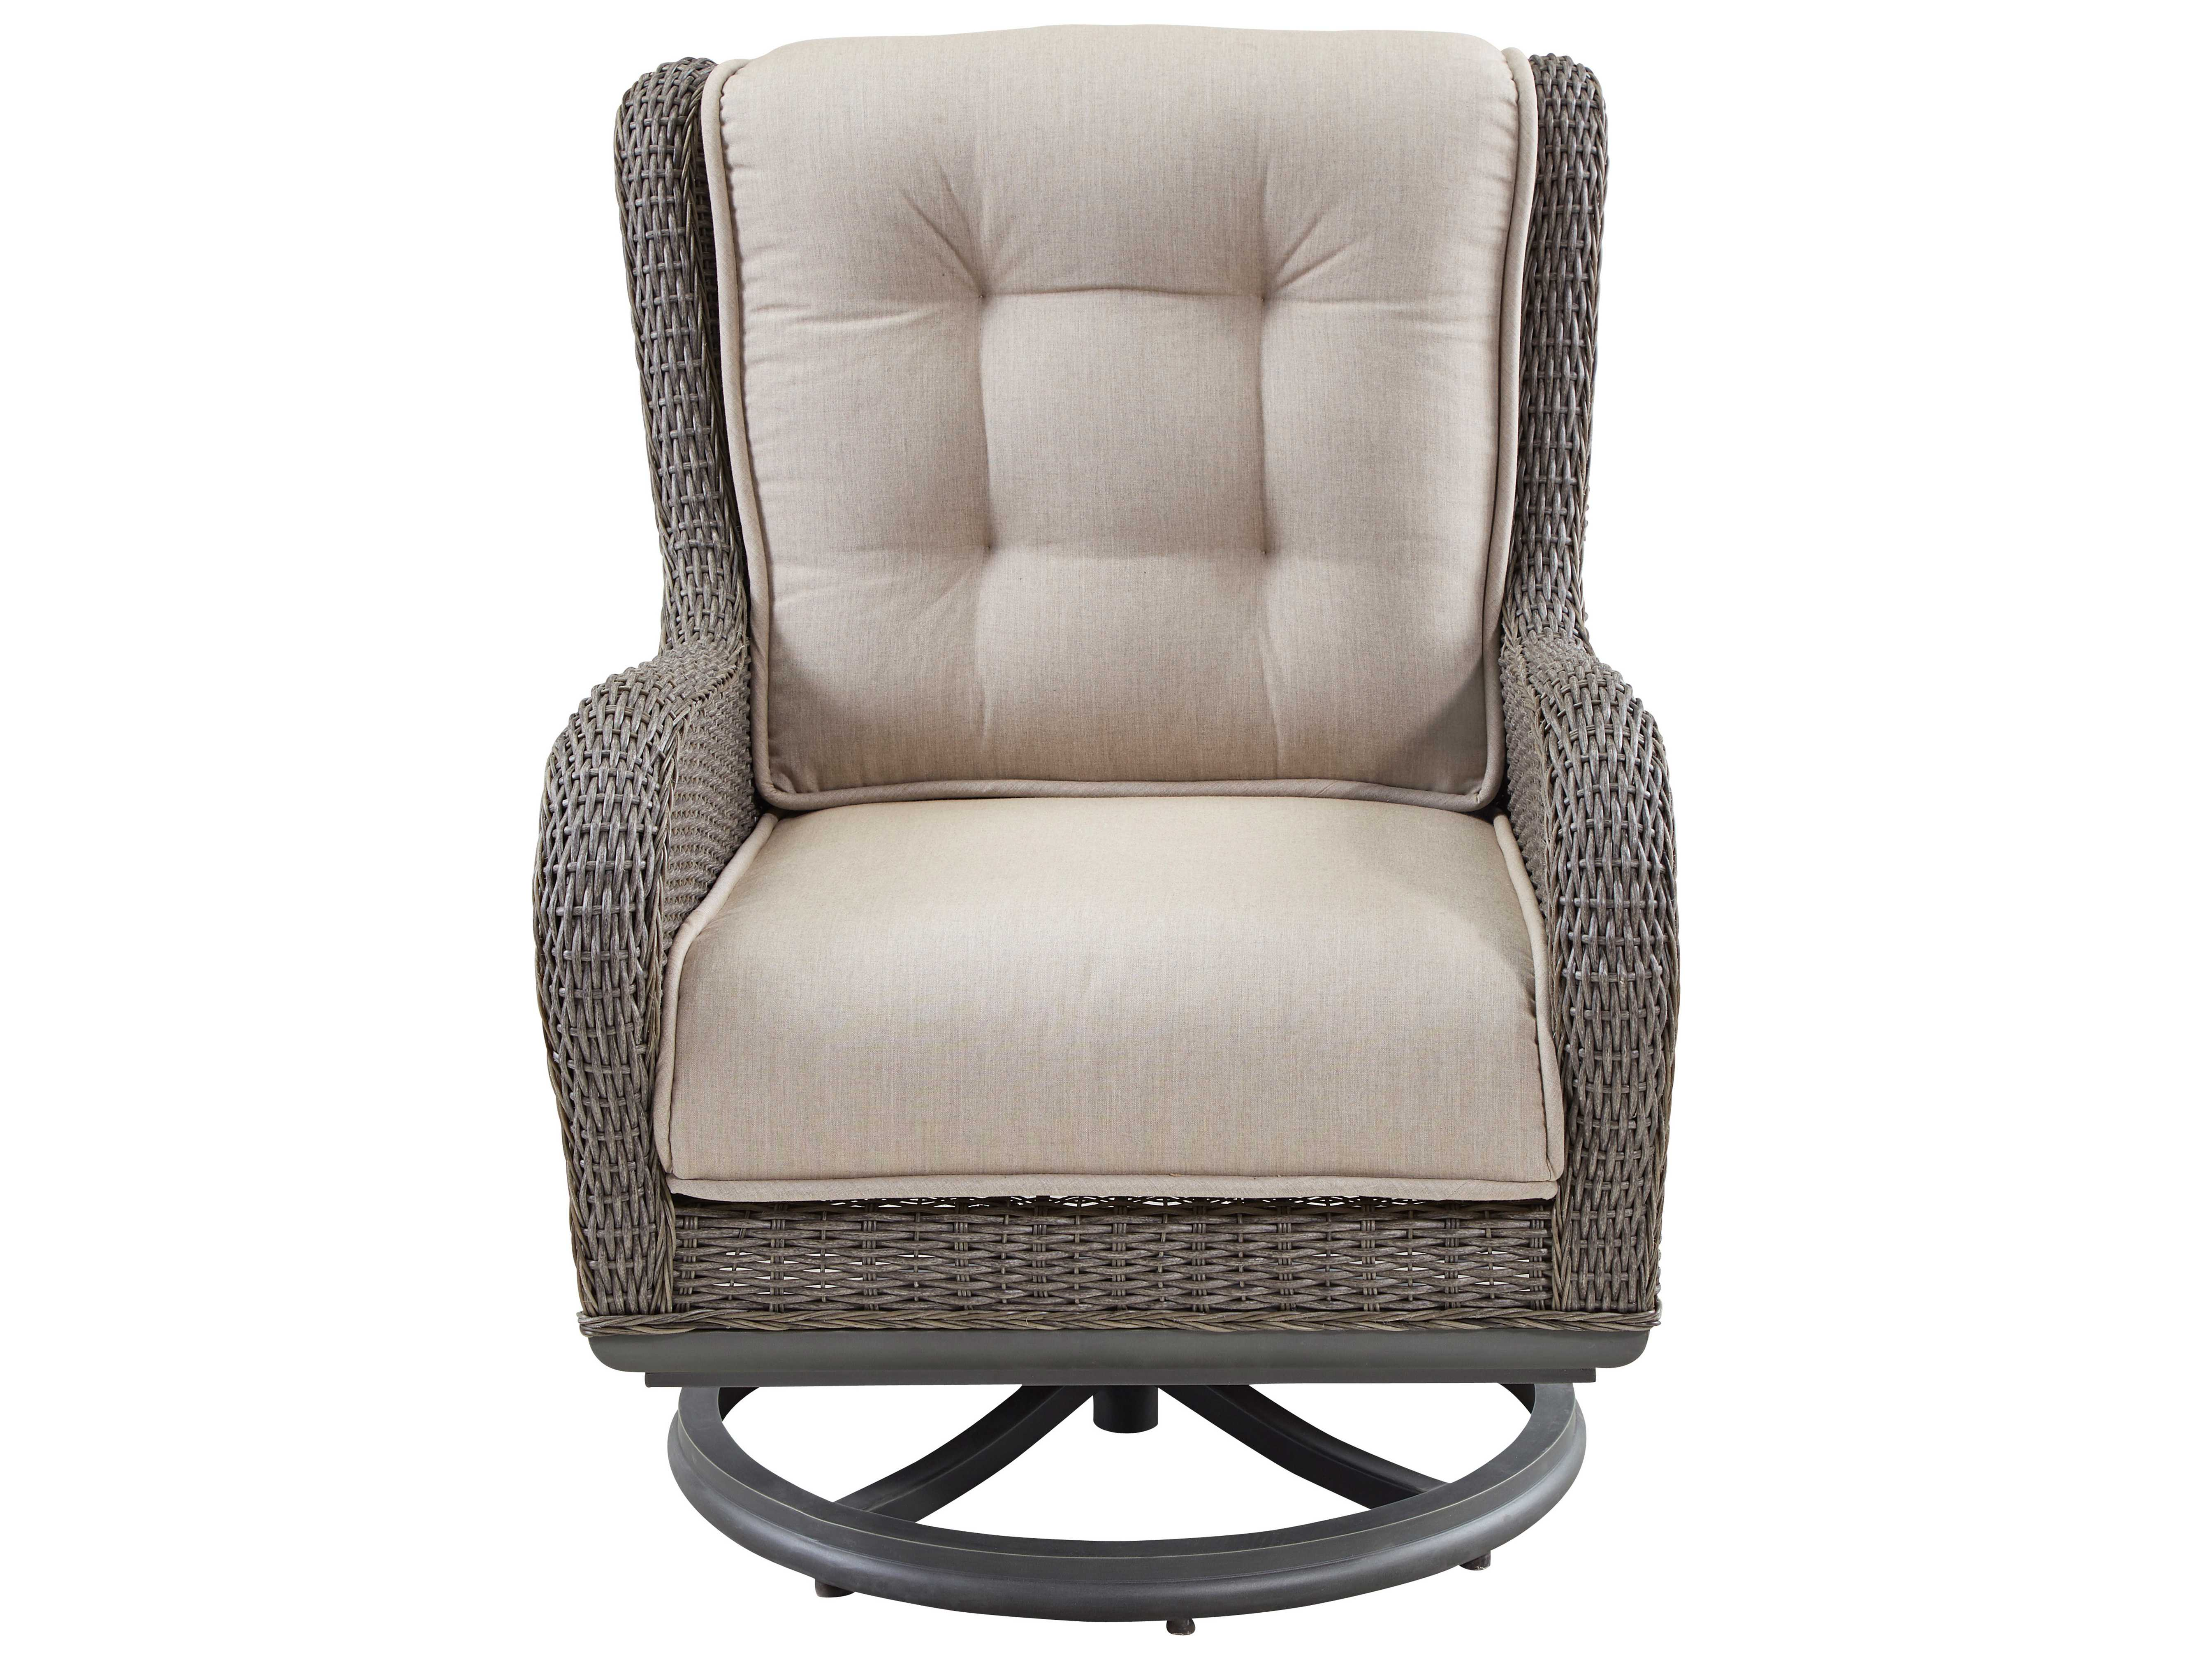 Terrific Paula Deen Outdoor Dogwood Wicker Swivel Lounge Chair Caraccident5 Cool Chair Designs And Ideas Caraccident5Info